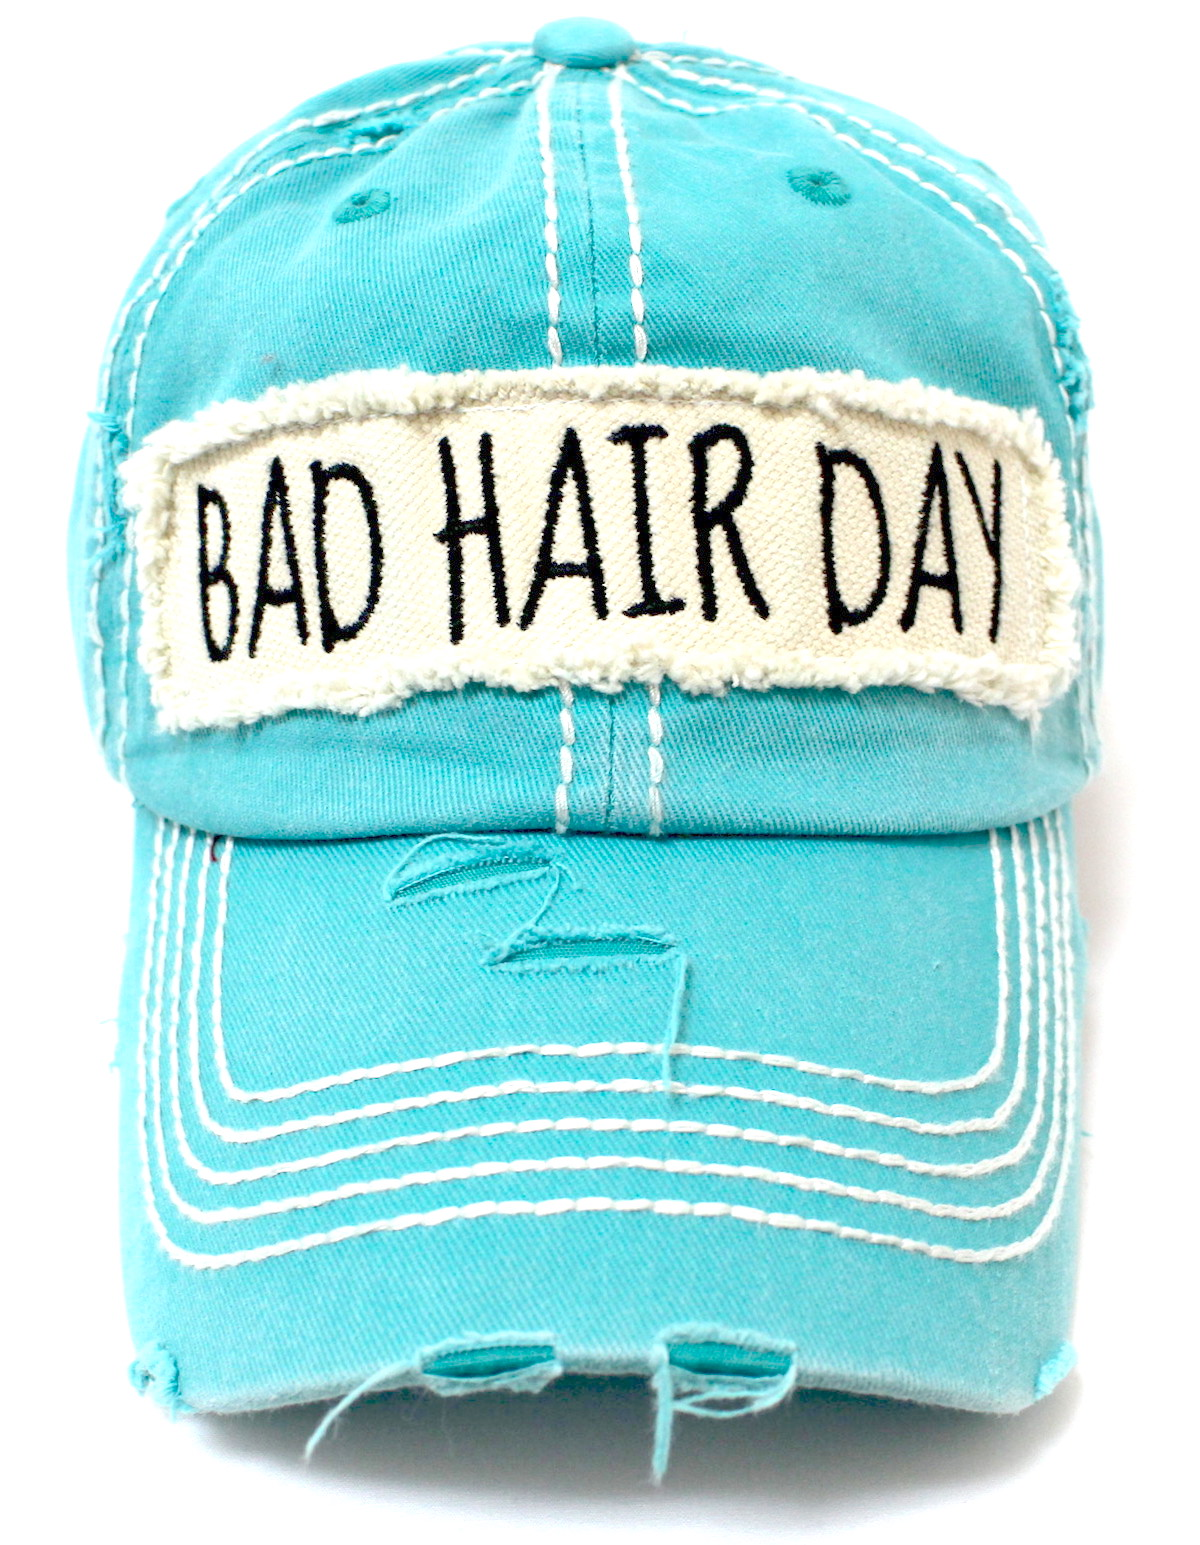 BAD HAIR DAY TURQUOISE